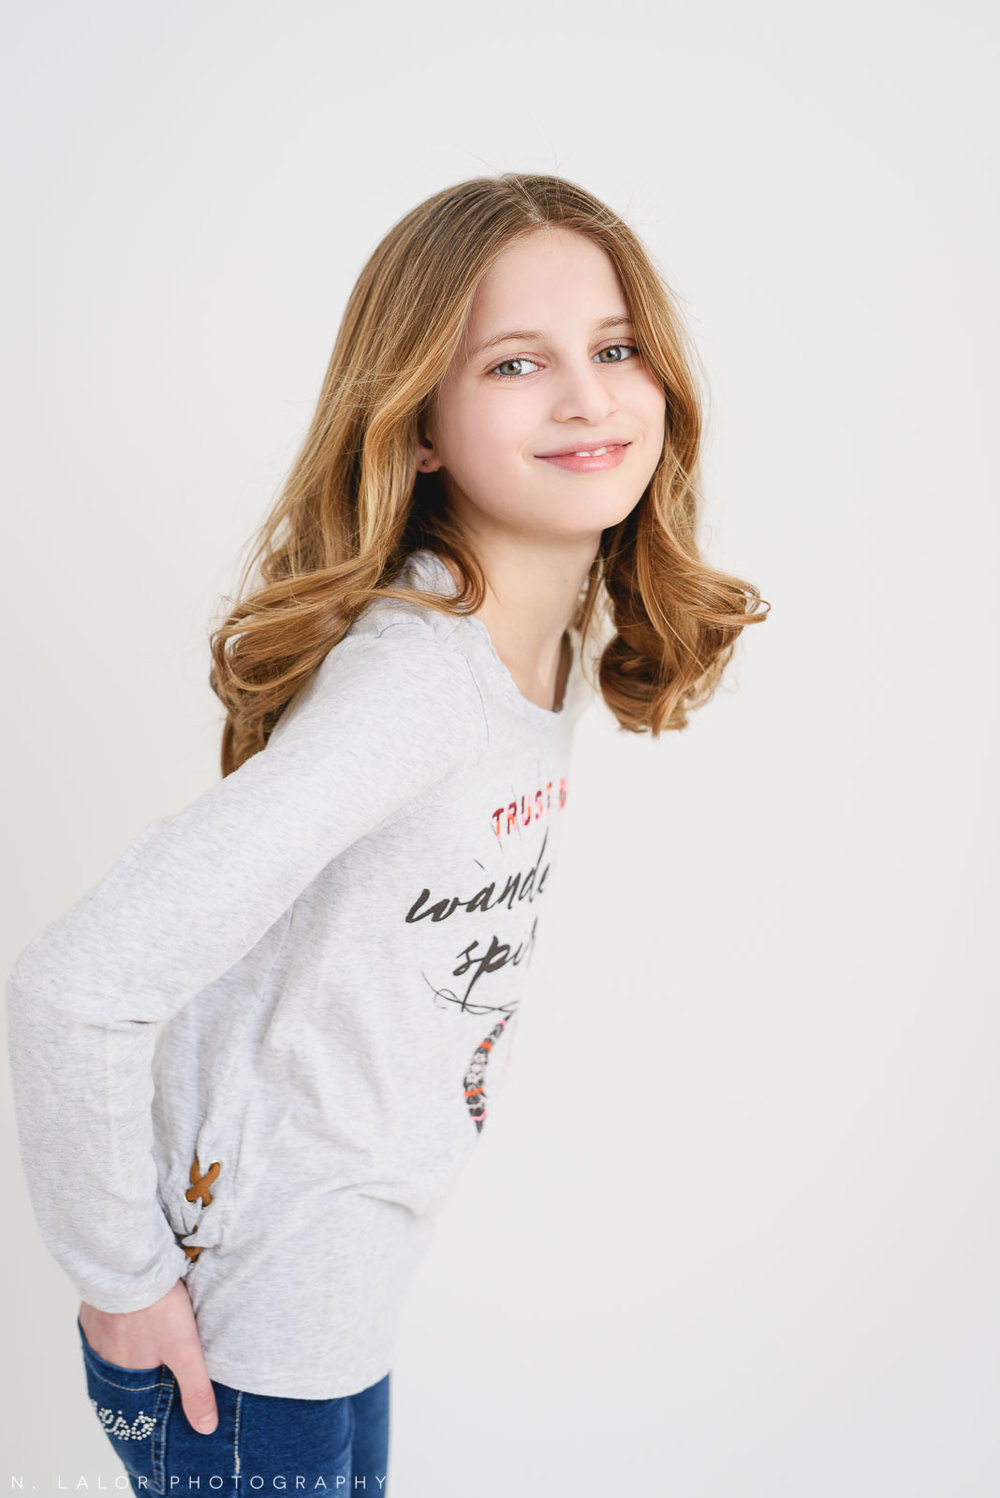 Smiles. Tween Studio photoshoot by N. Lalor Photography, located in Greenwich, CT.